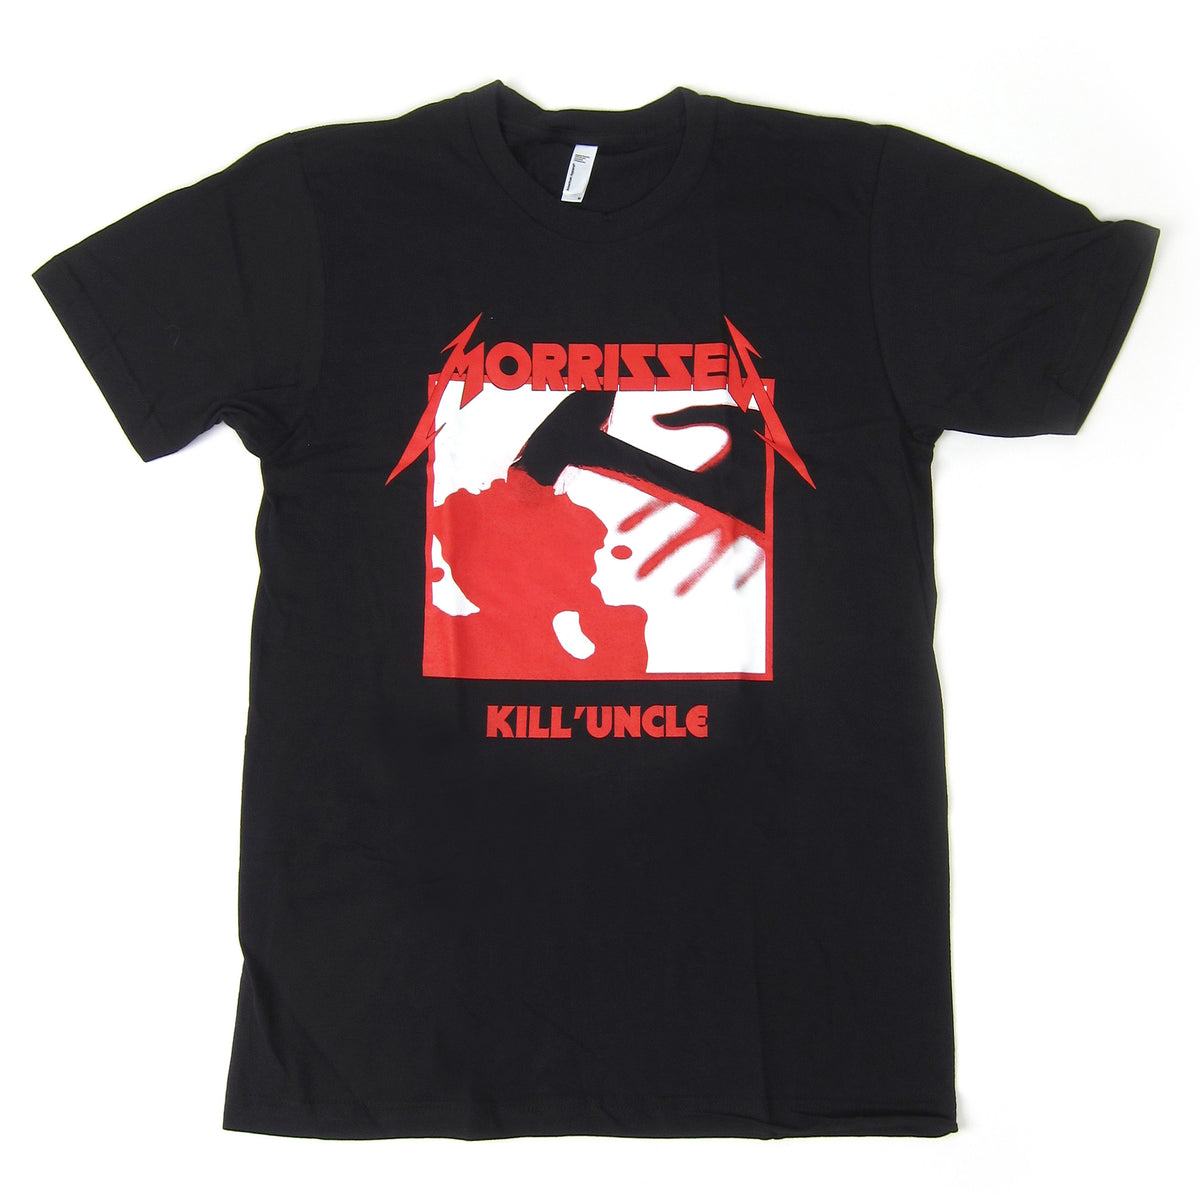 Wear Dinner: Kill Uncle Shirt - Black